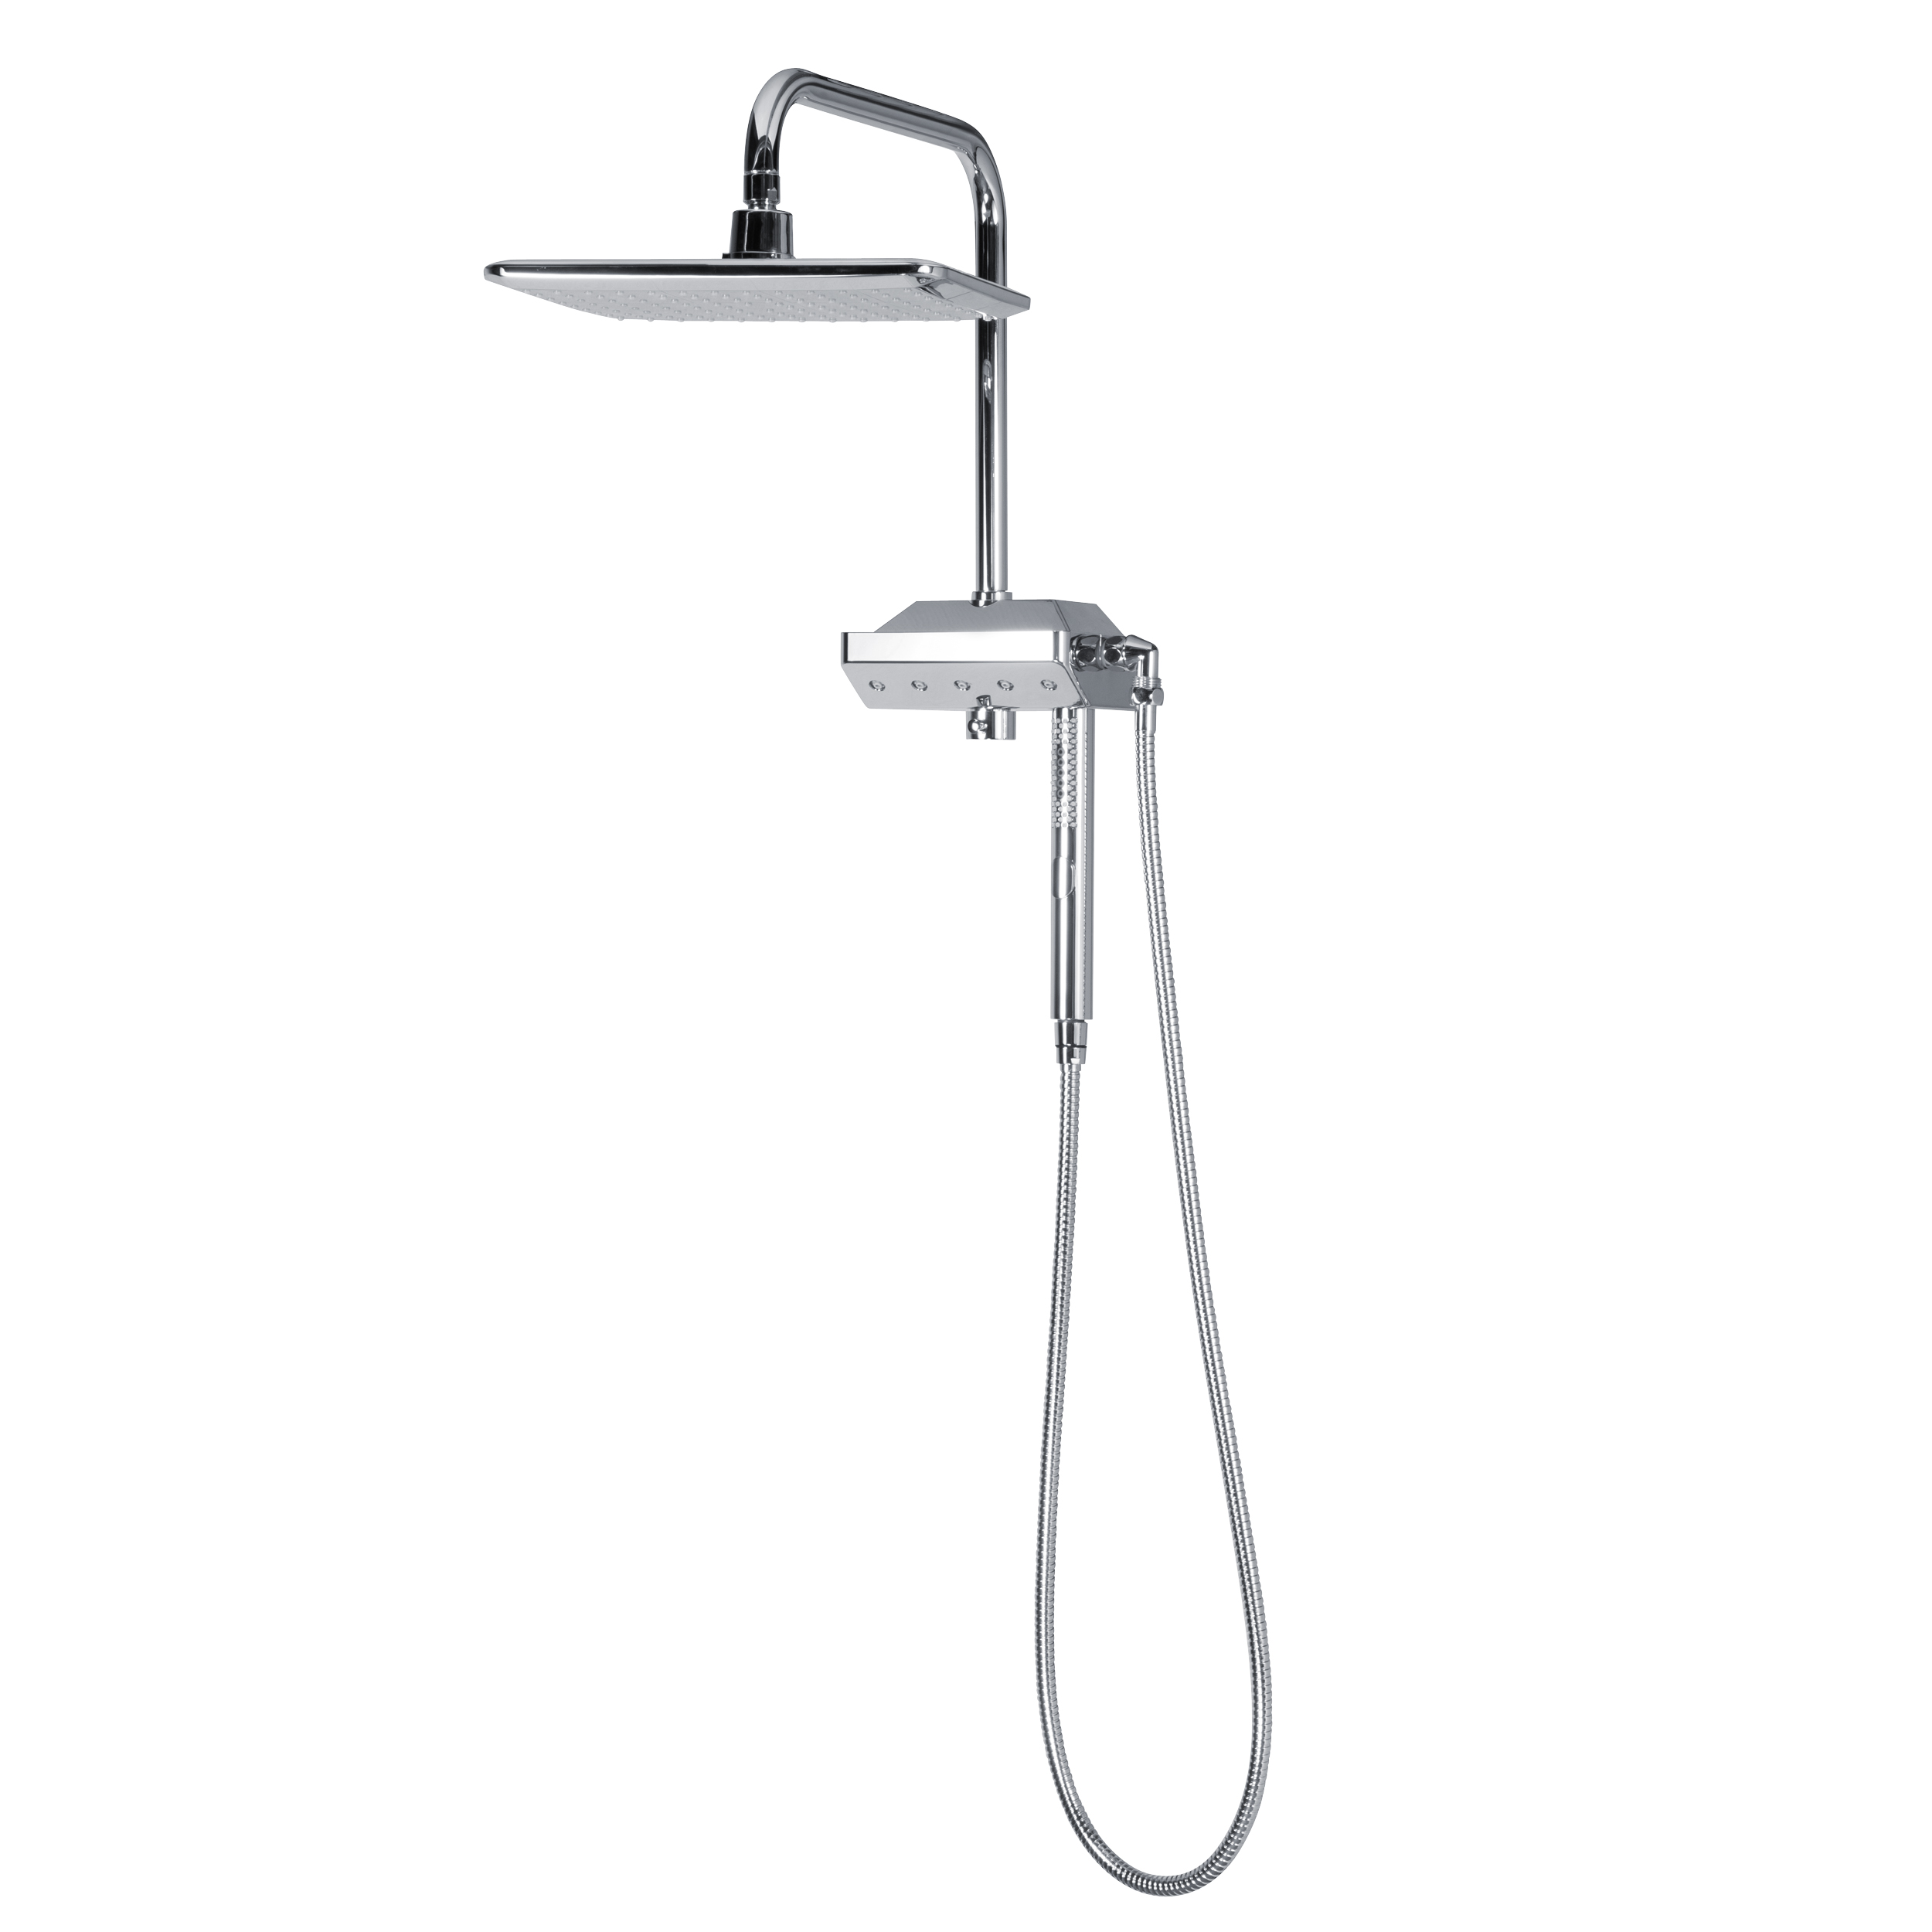 Aquapower Shower System 1054